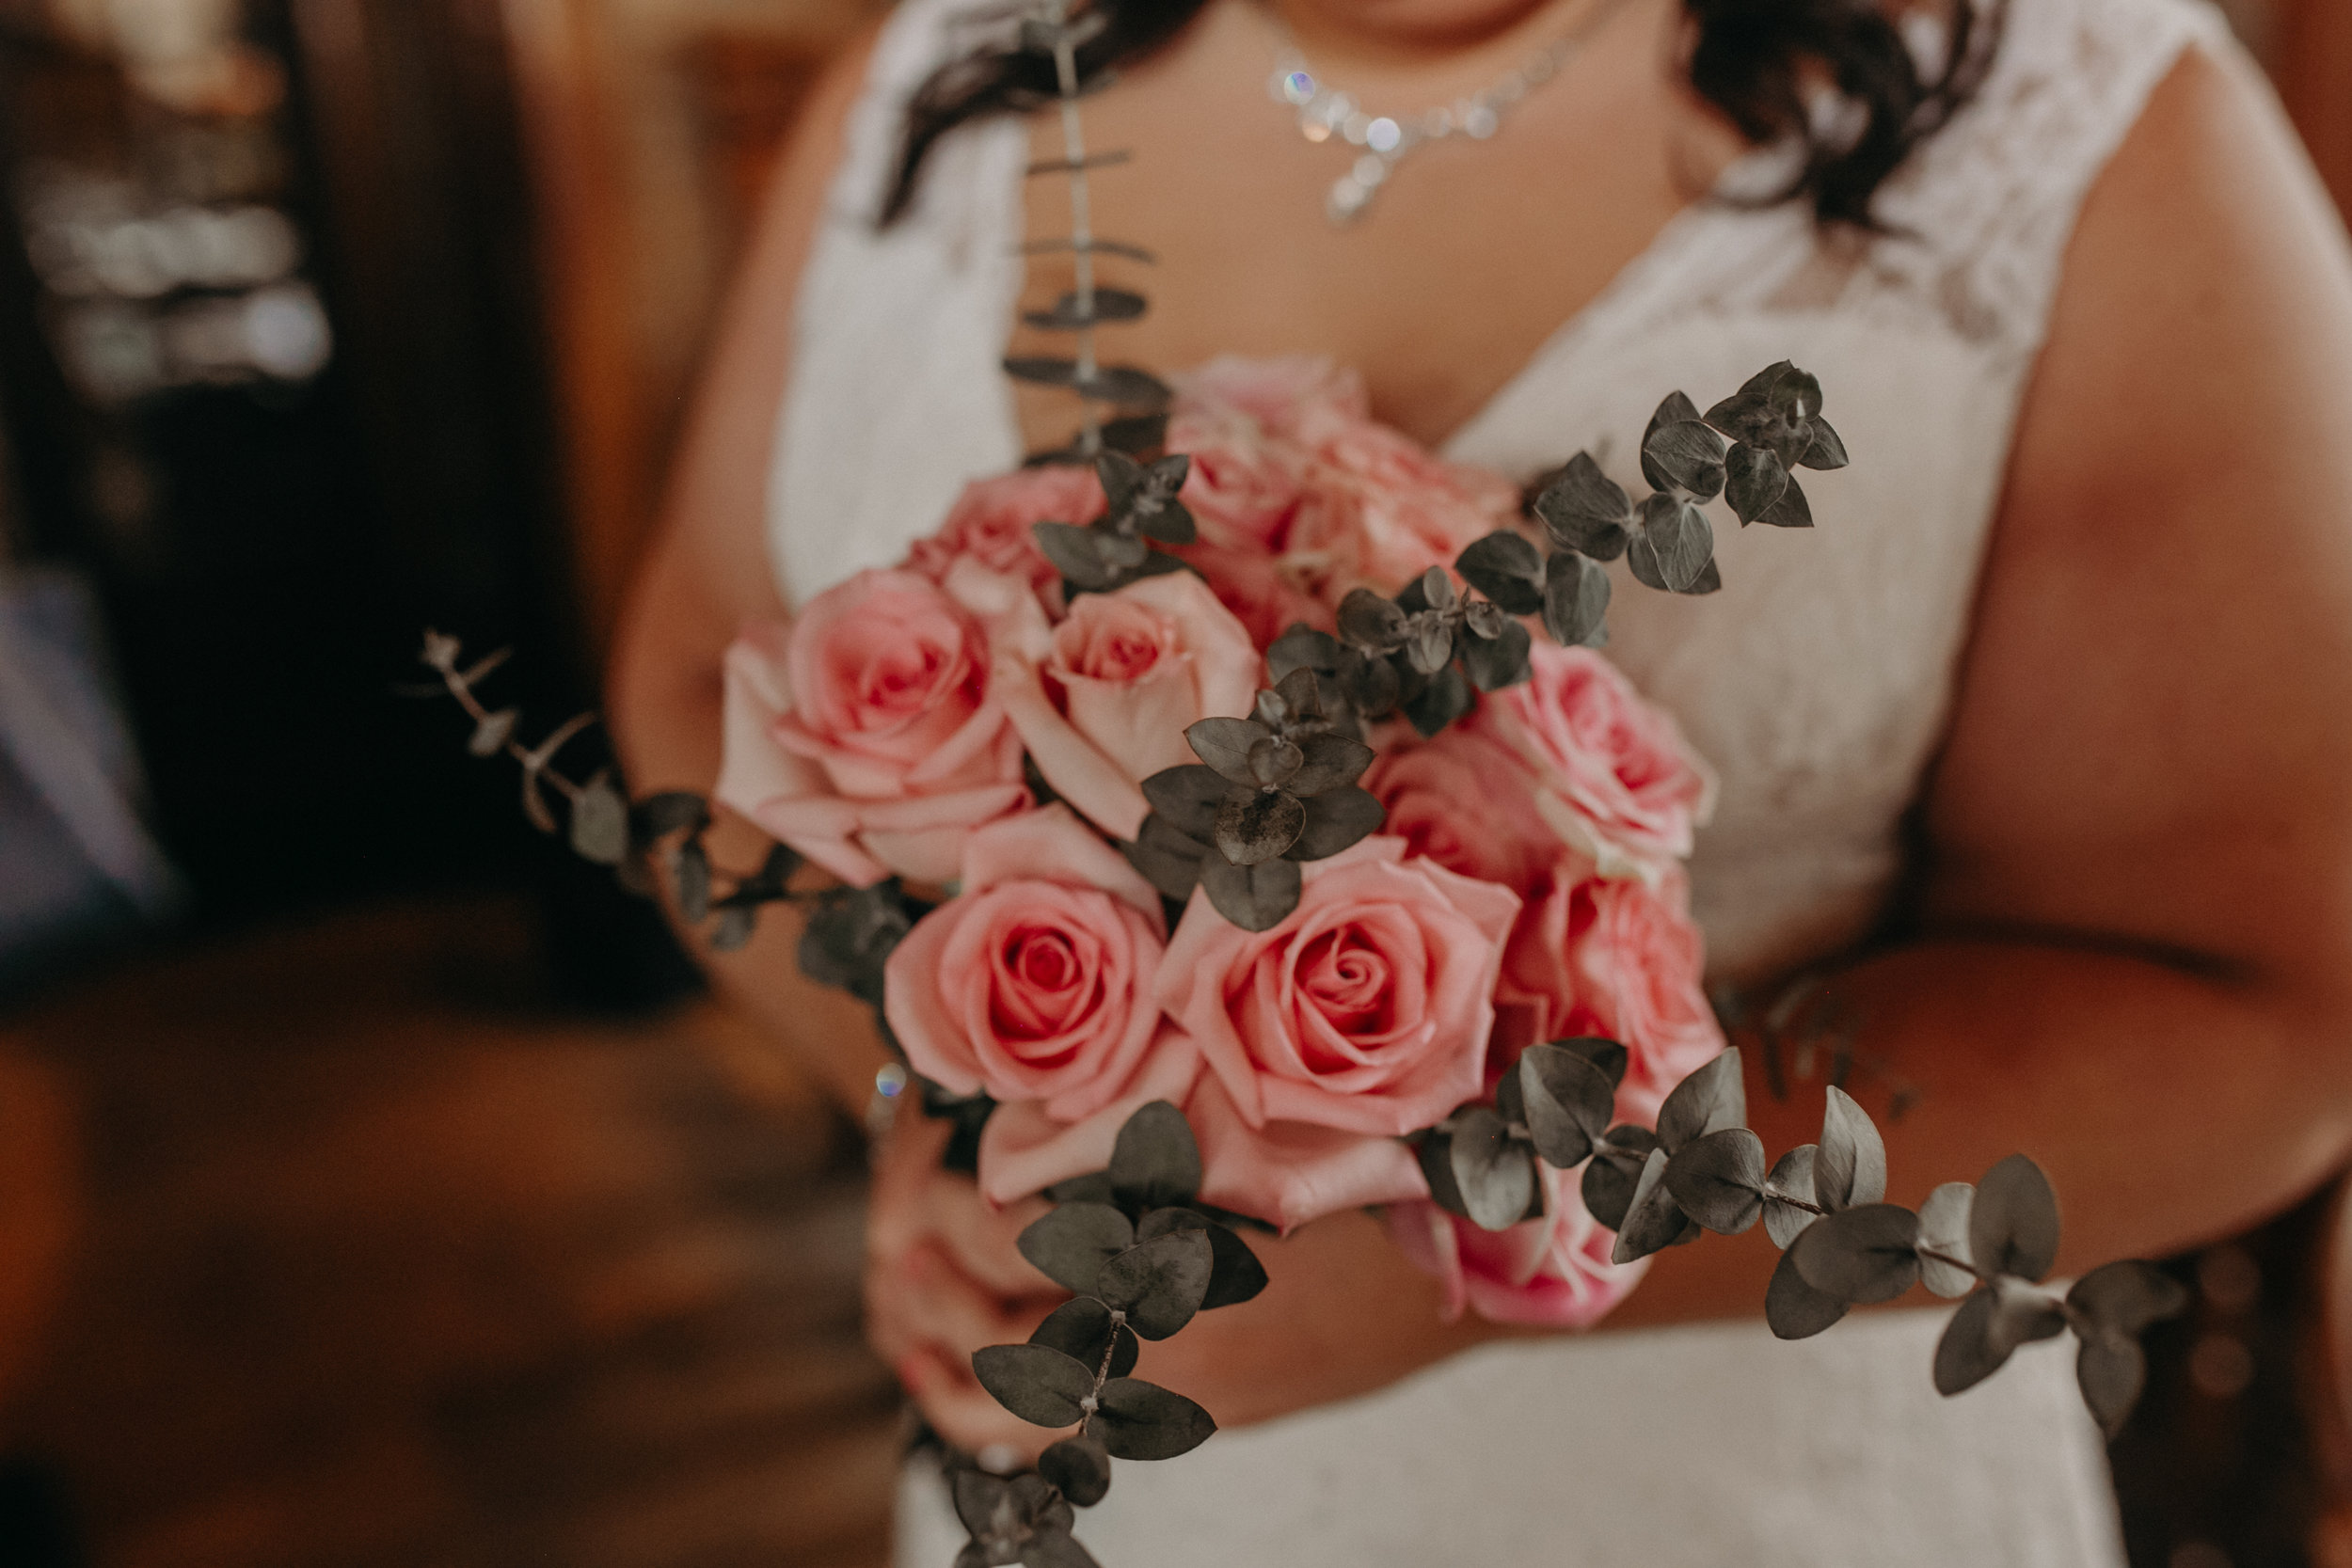 A bride at W.A. Frost holds her wedding bouquet made from pink roses and eucalyptus